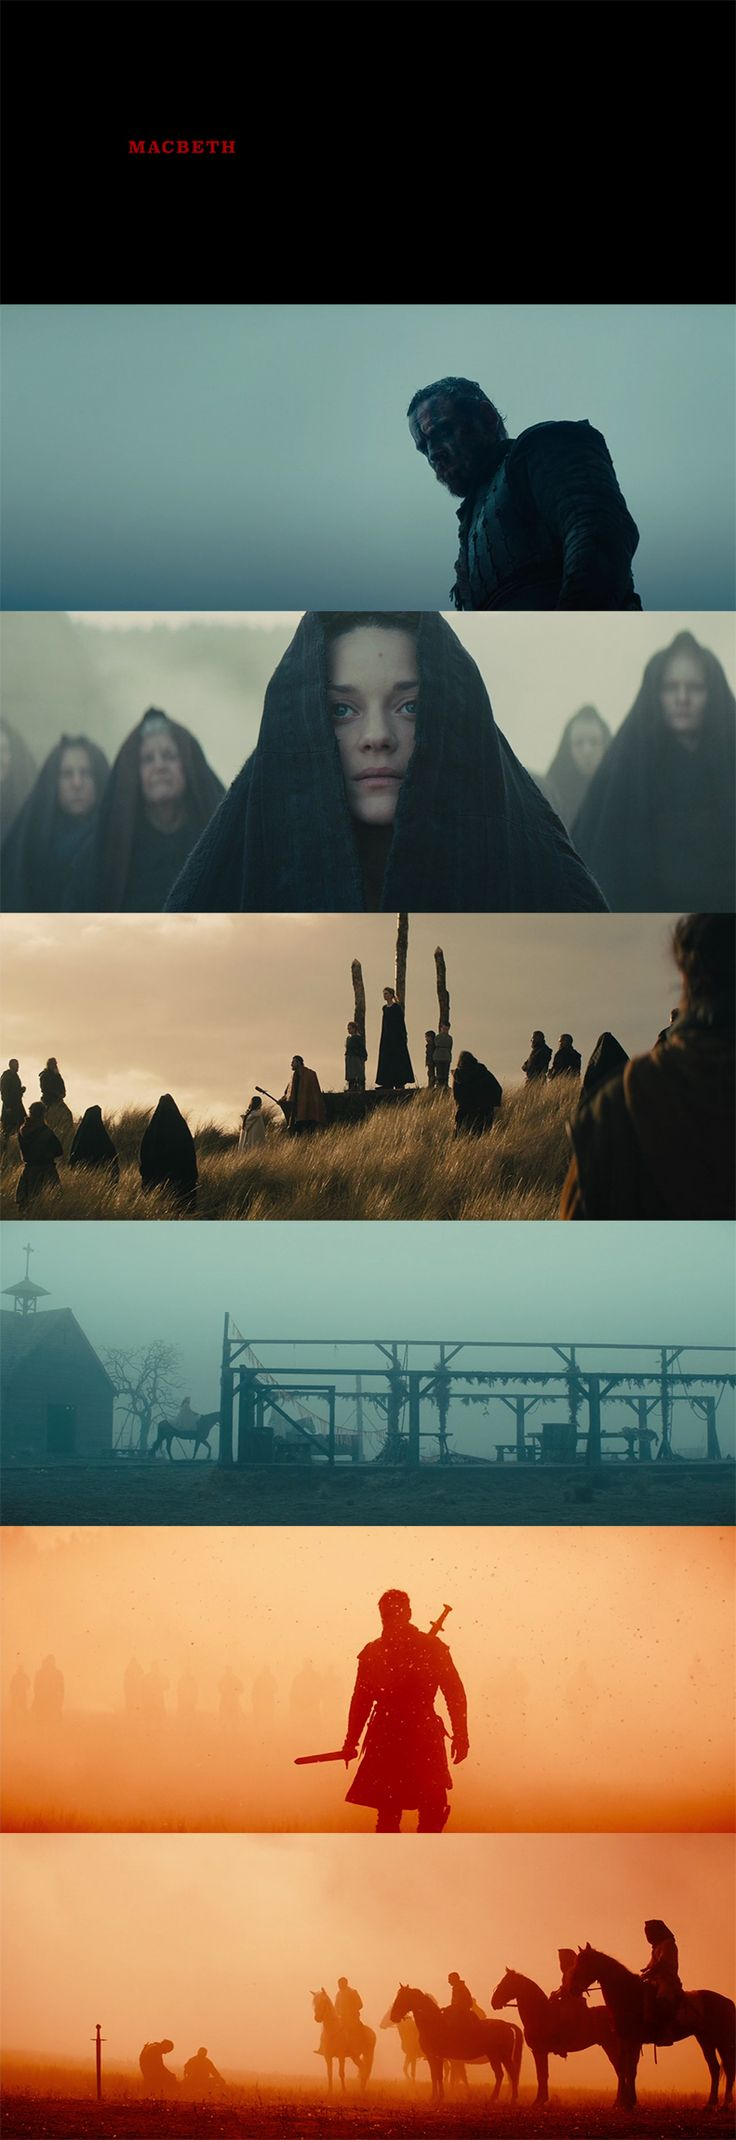 Macbeth (2015) - Cinematography by Adam Arkapaw | Directed by Justin Kurzel